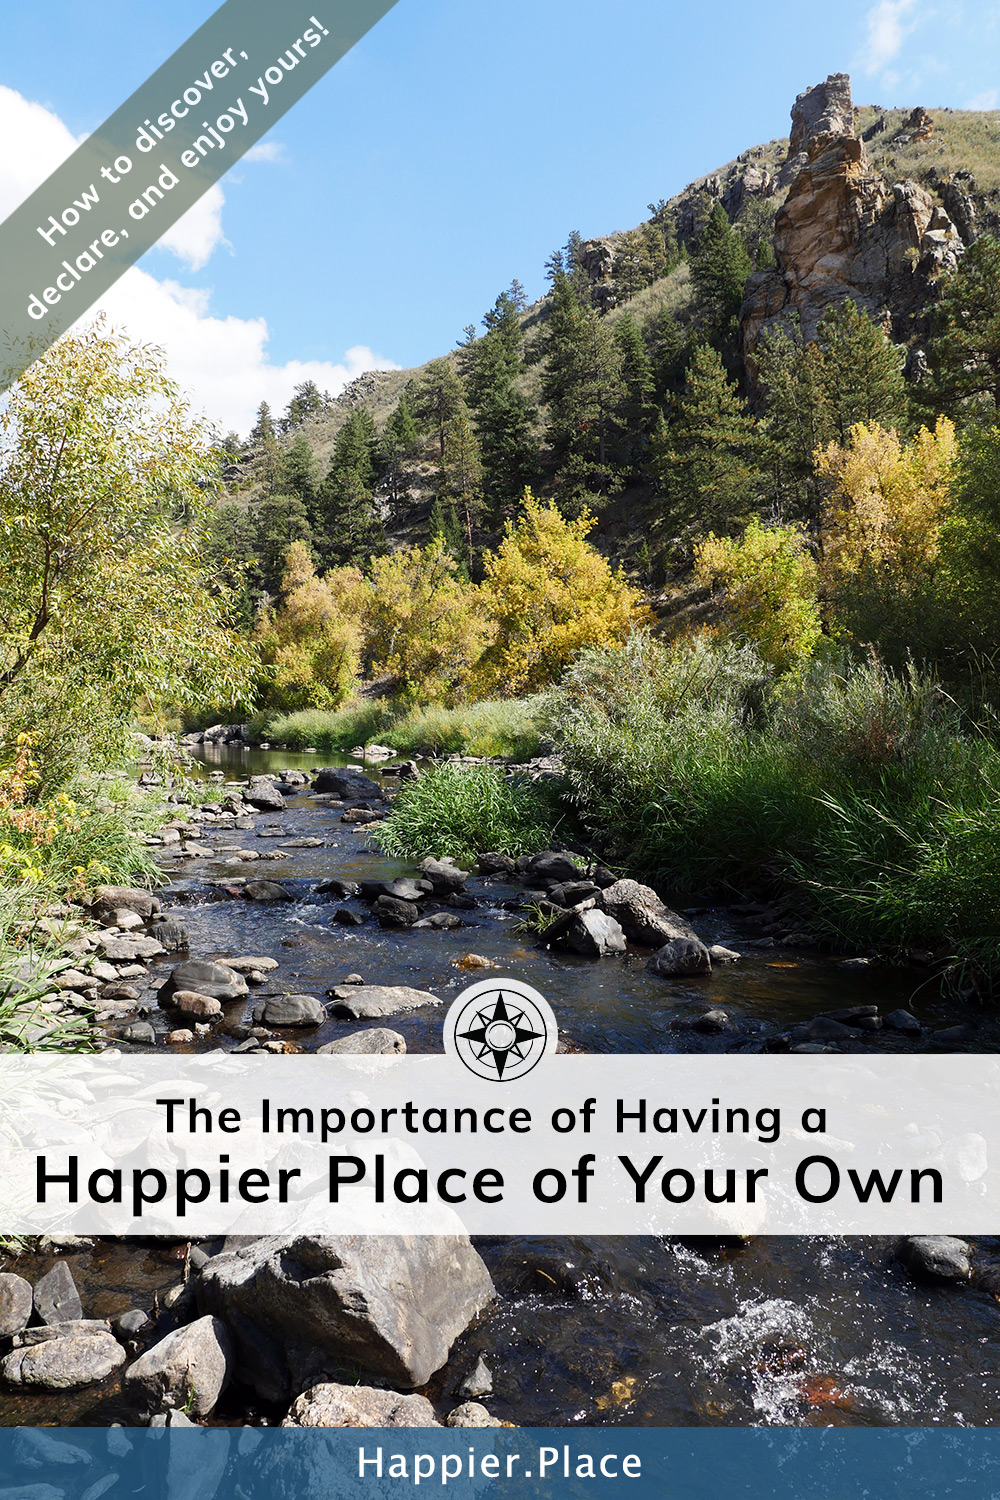 The Importance of Having a Happier Place of Your Own